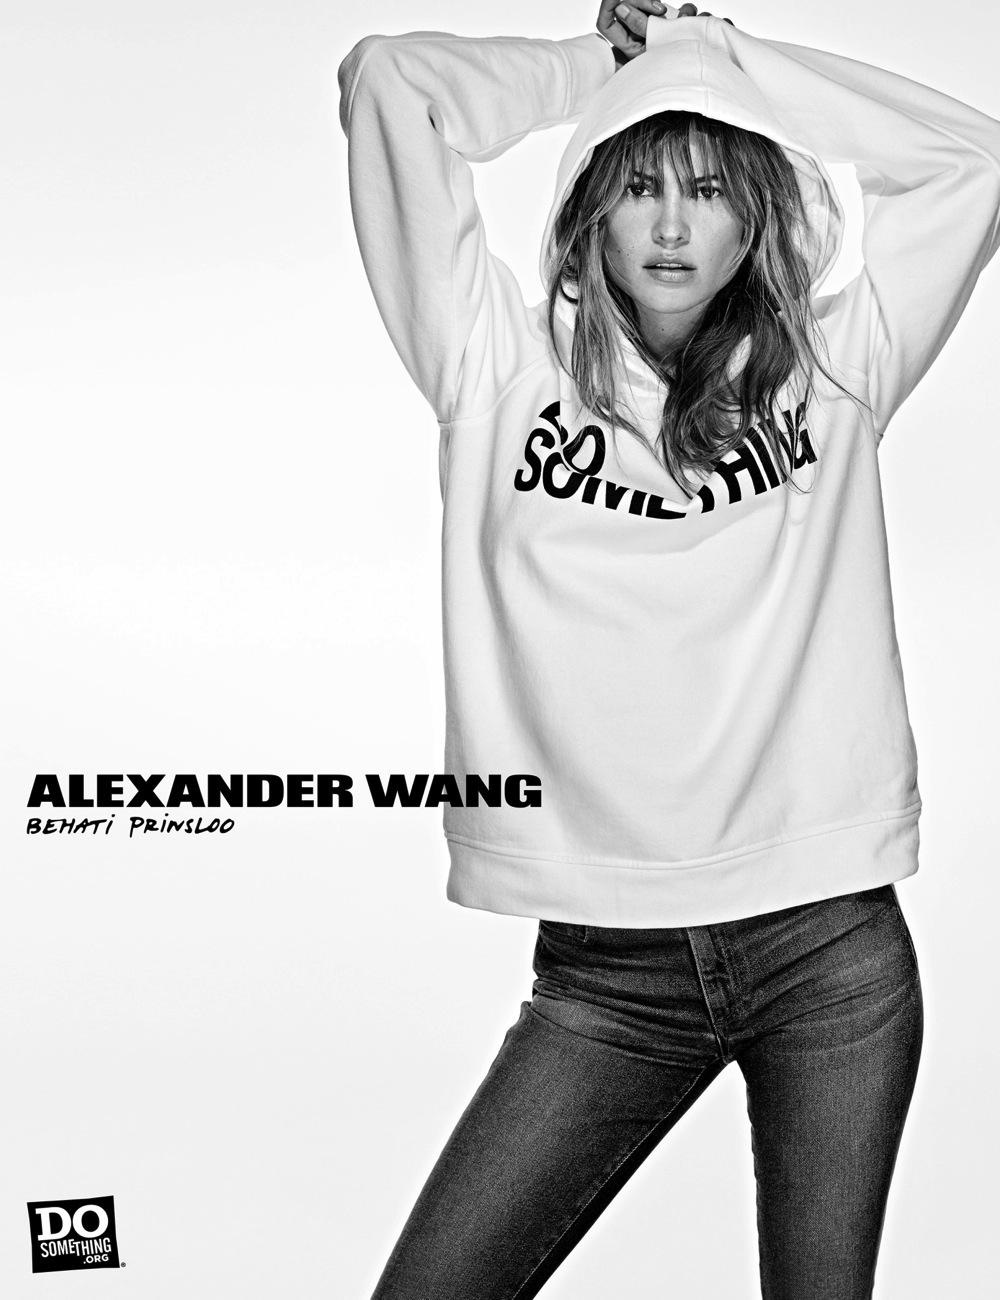 Behati Prinsloo wears Alexander Wang x DoSomething